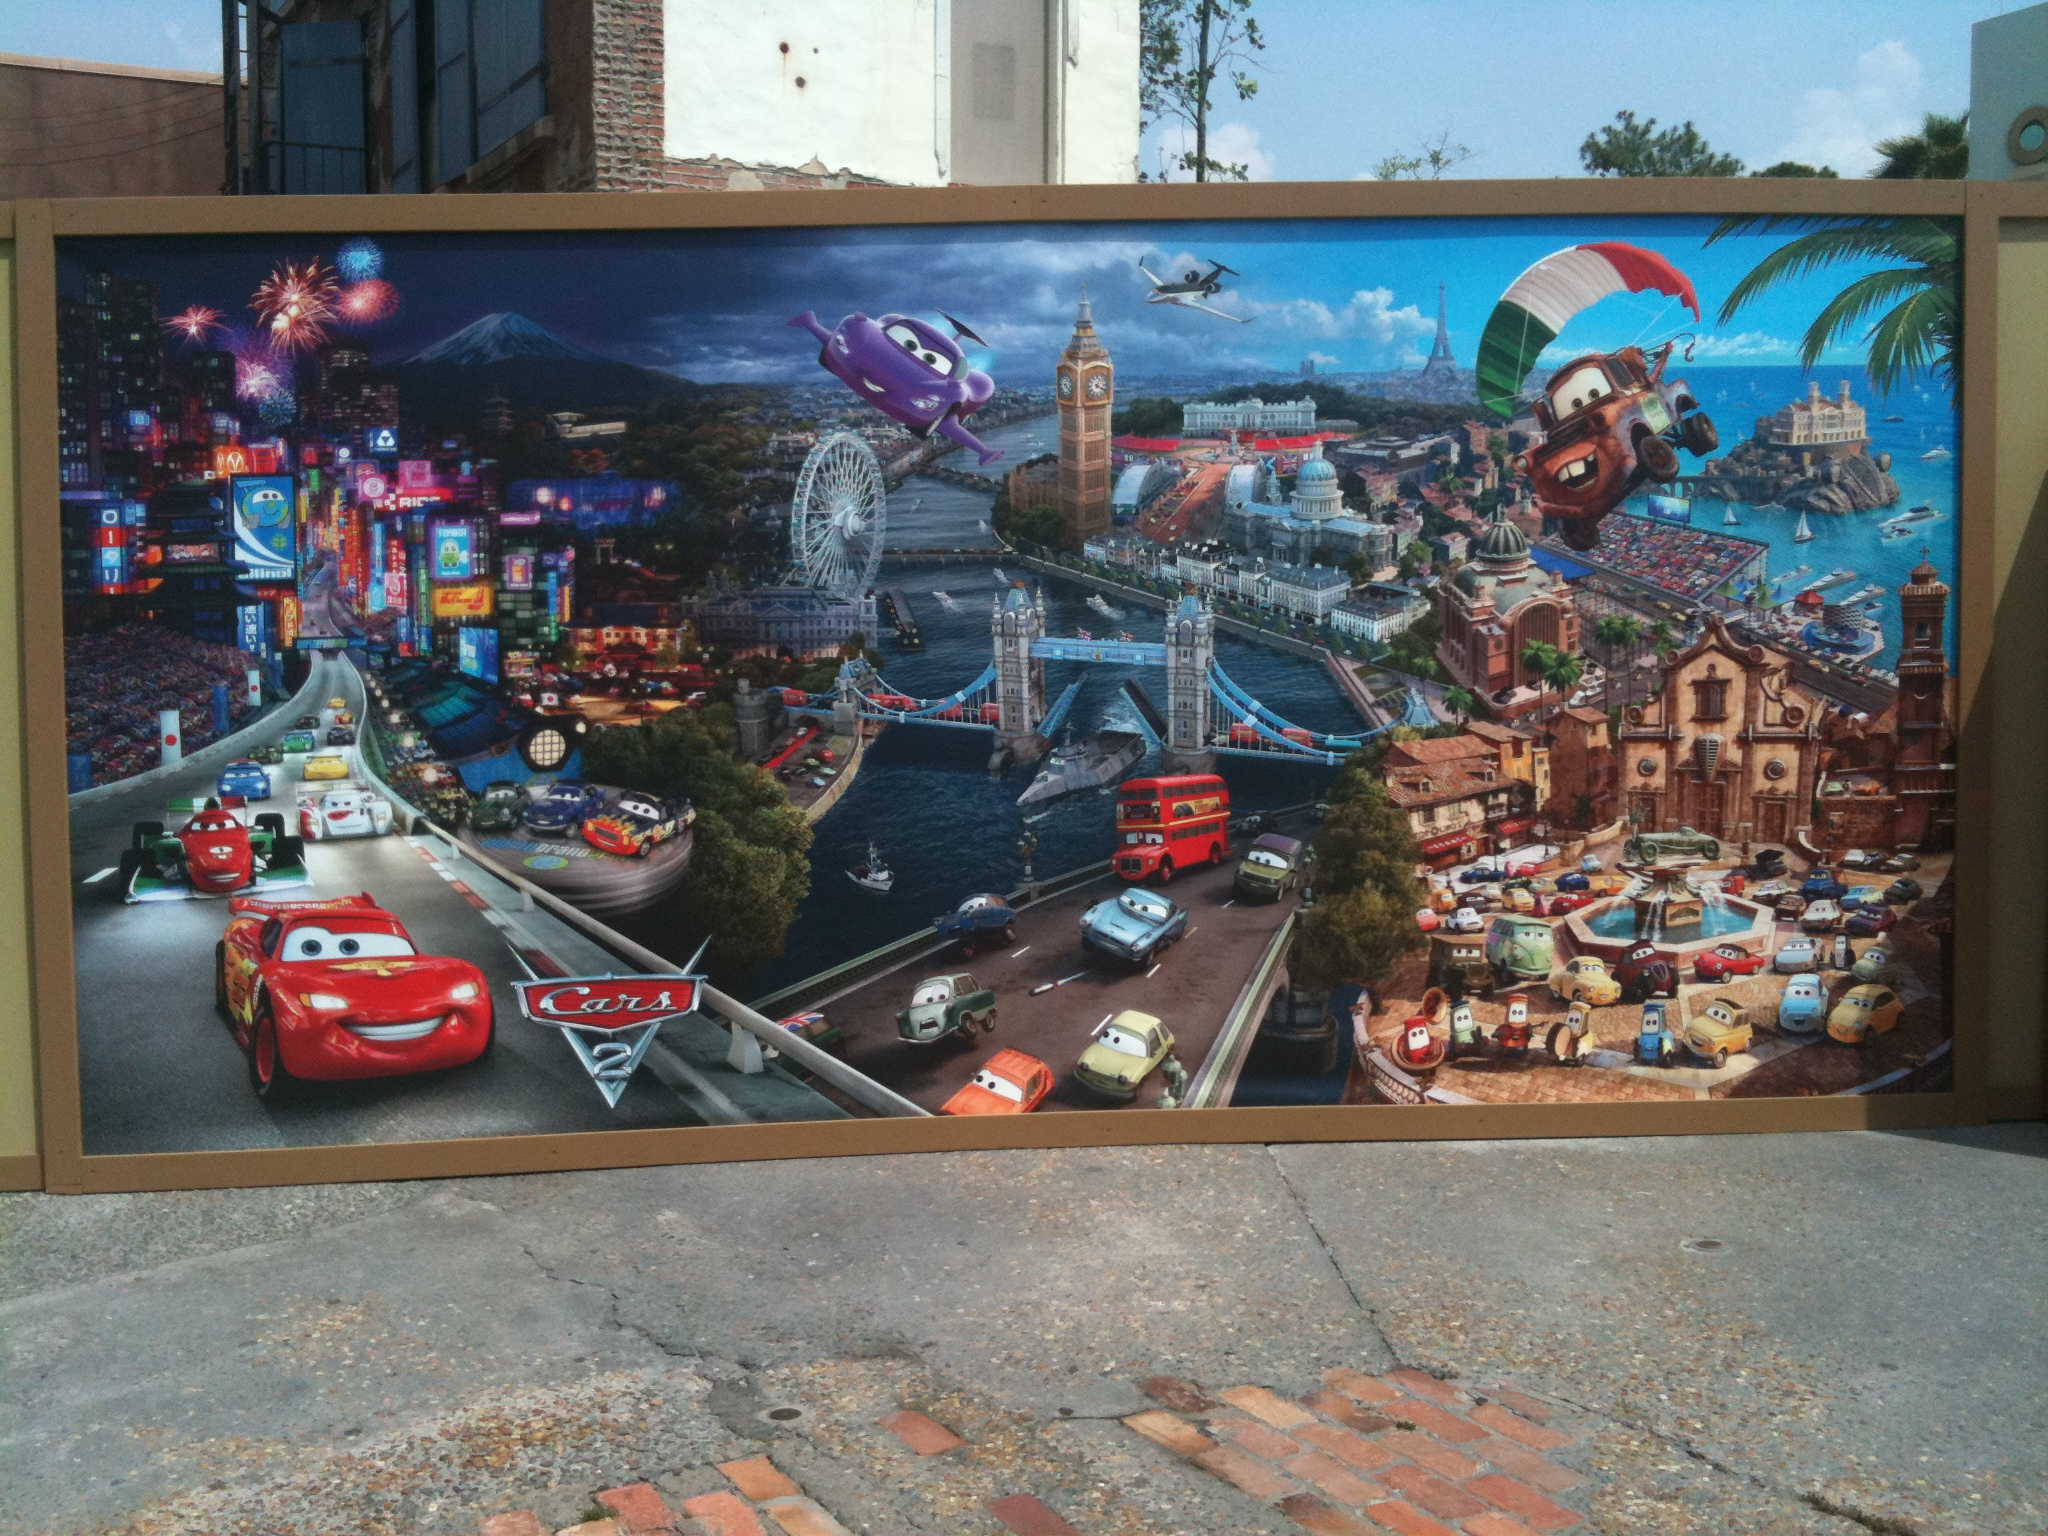 Wordless Wednesday U2013 Pixar Cars 2 Mural At Walt Disney World | Disney Every  Day